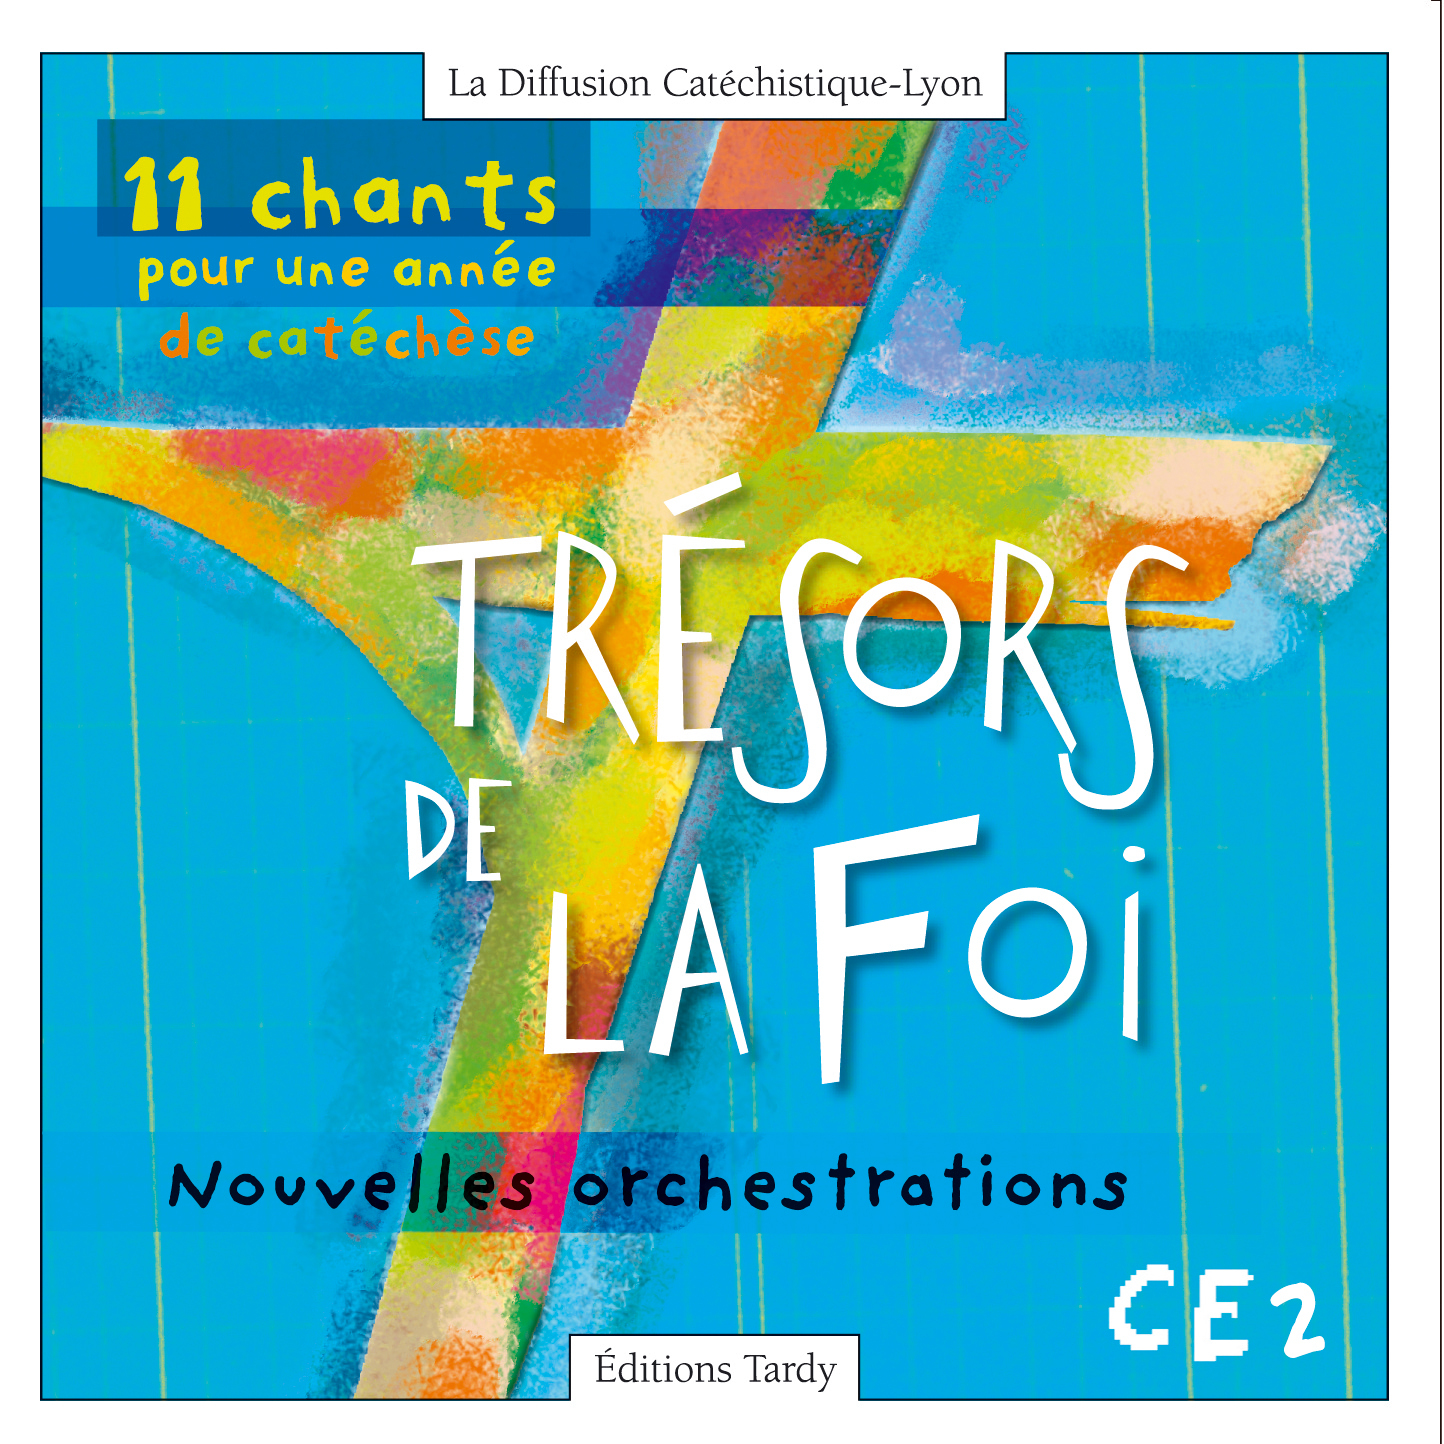 11 CHANTS CATECHESE CD + PARTITIONS CE2 NE 2004